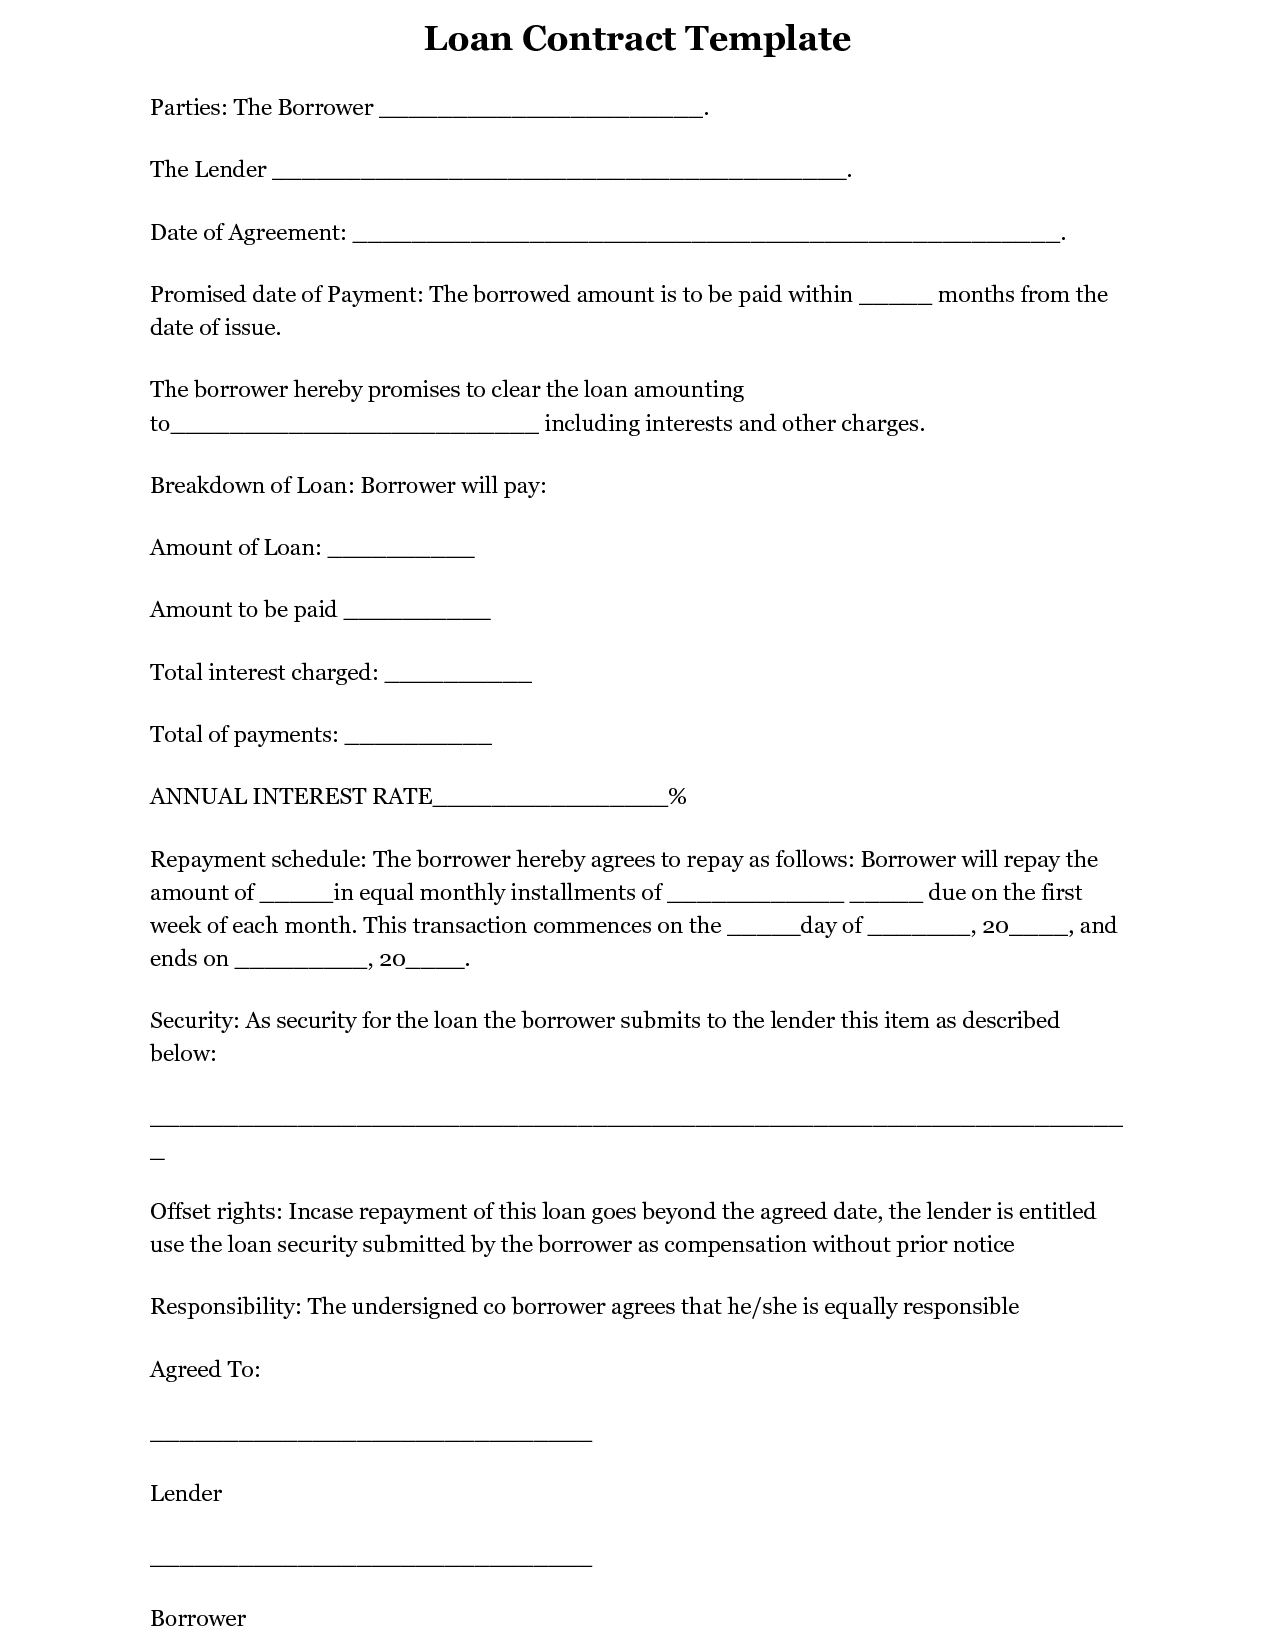 Printable Sample Loan Template Form Legal Template Online - Legal loan document template